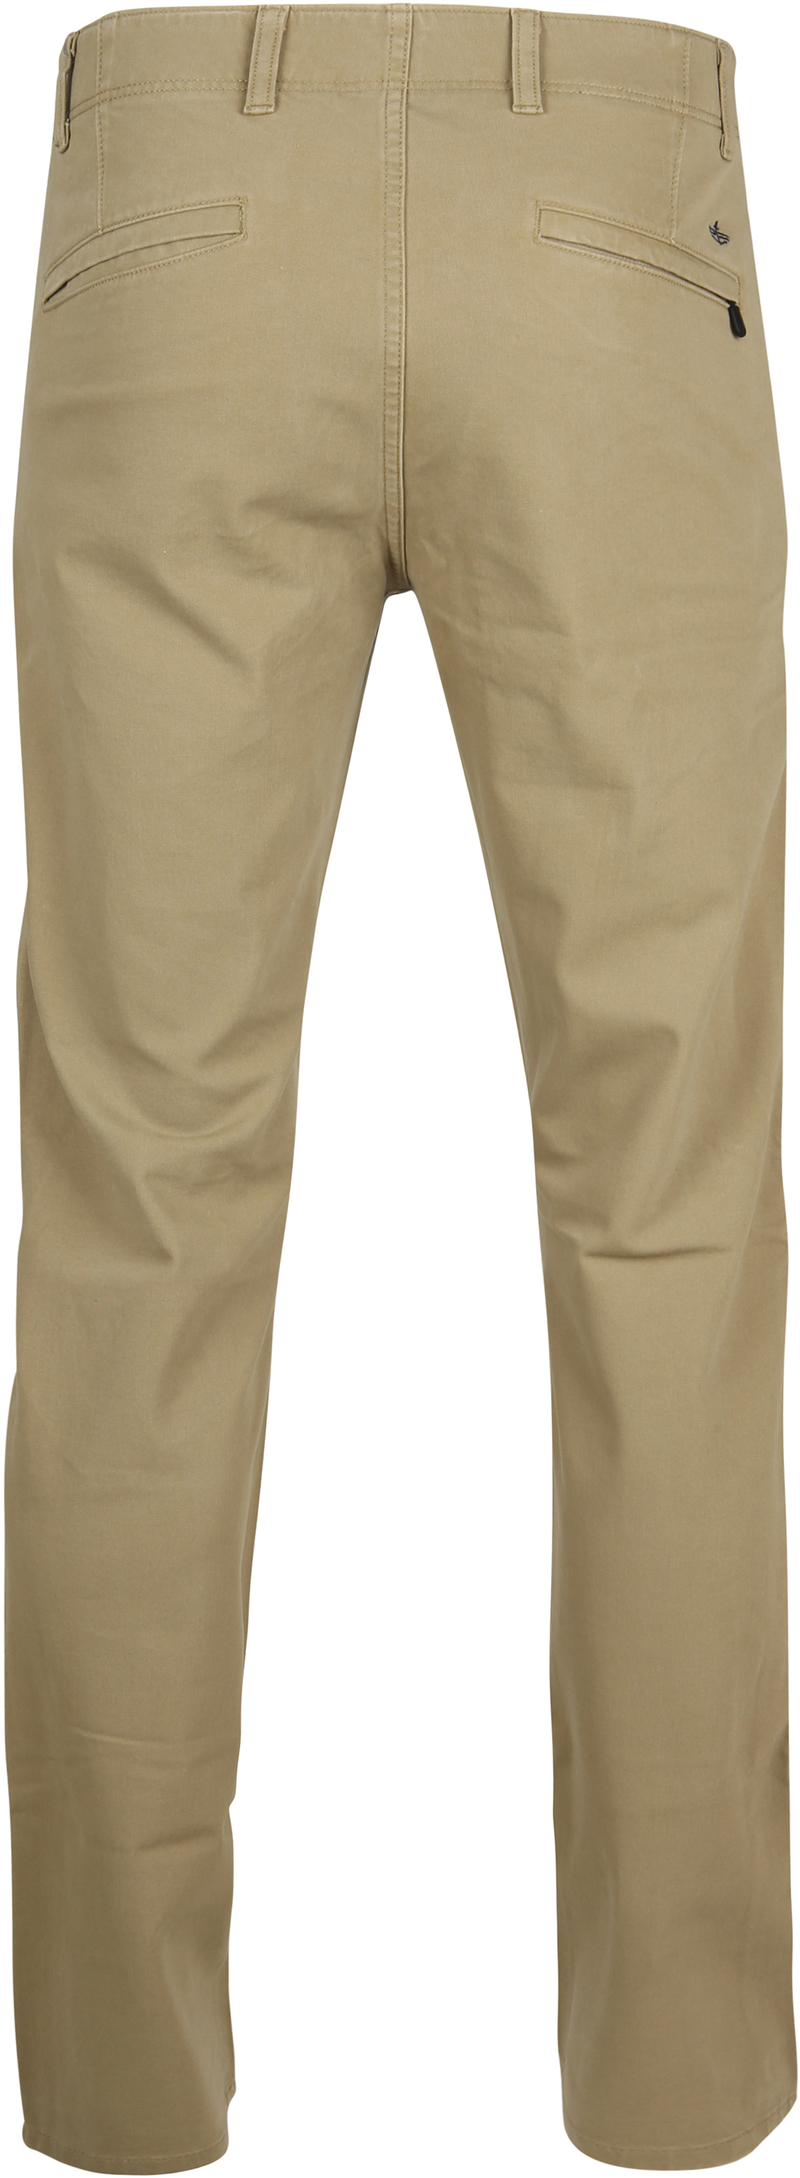 Dockers Alpha Khaki Skinny  photo 4